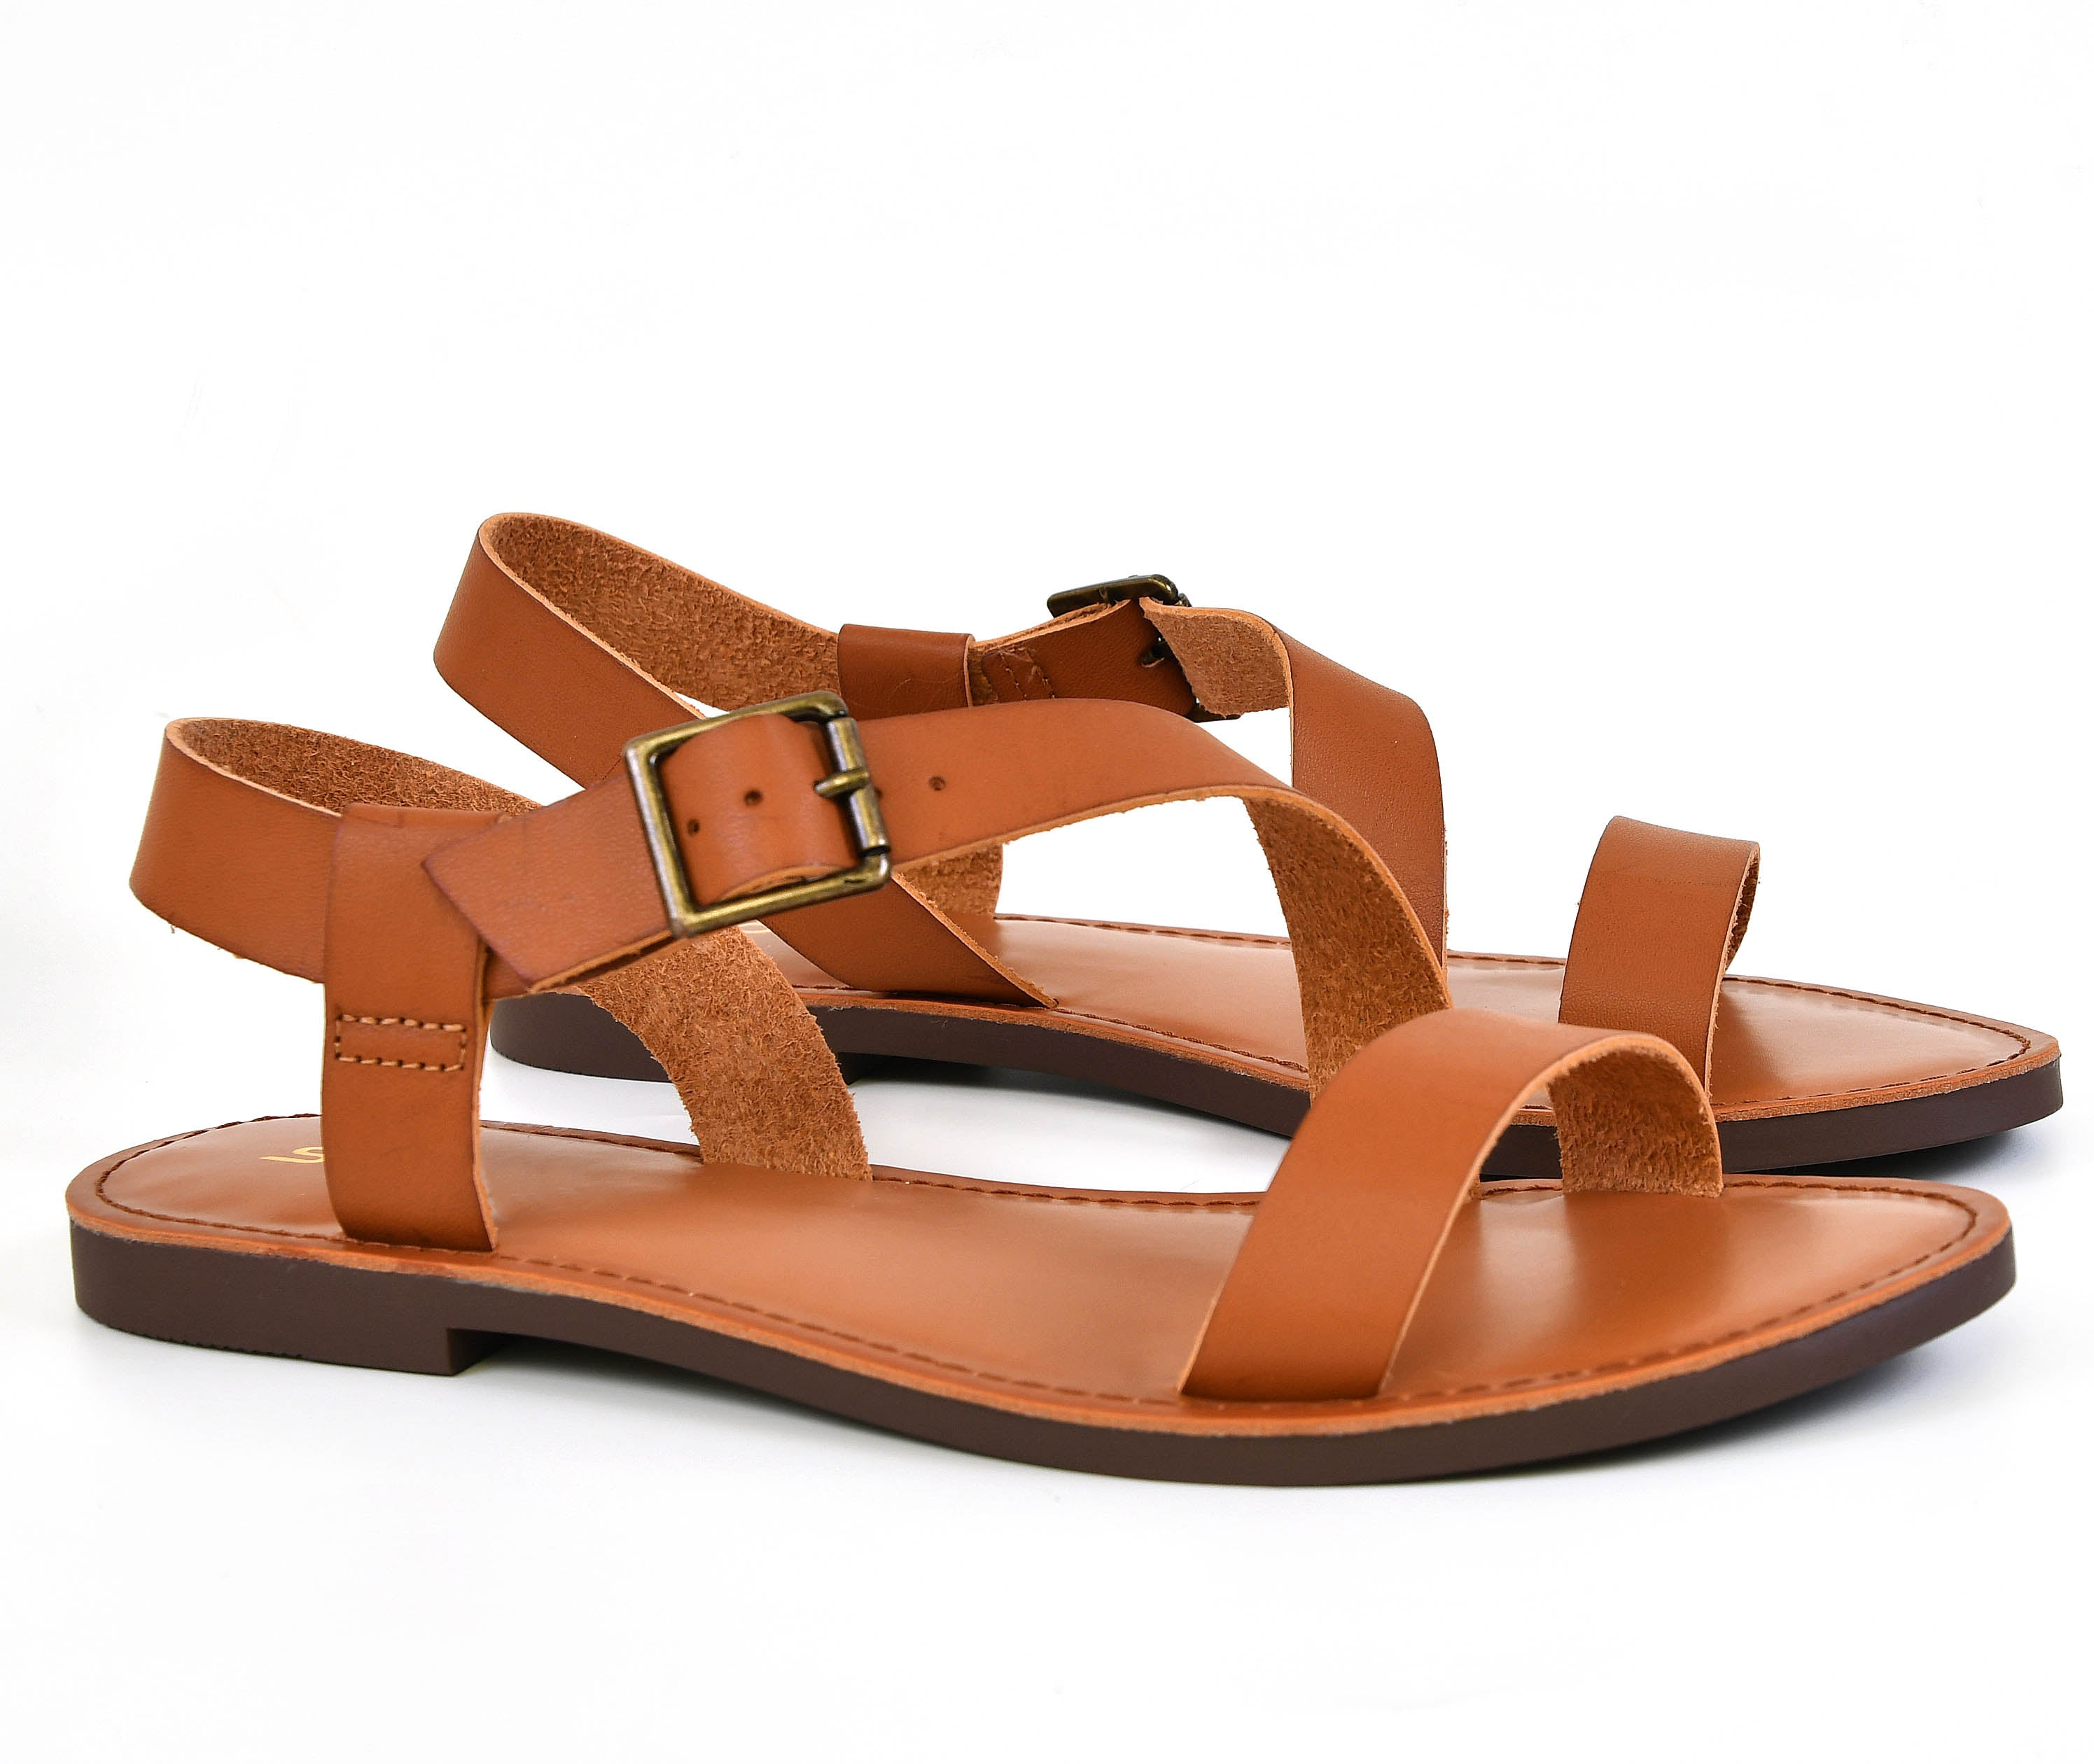 6cf151cc04c1b Asymmetric Strap Buckled Flat Sandal – Chica s Shoetique